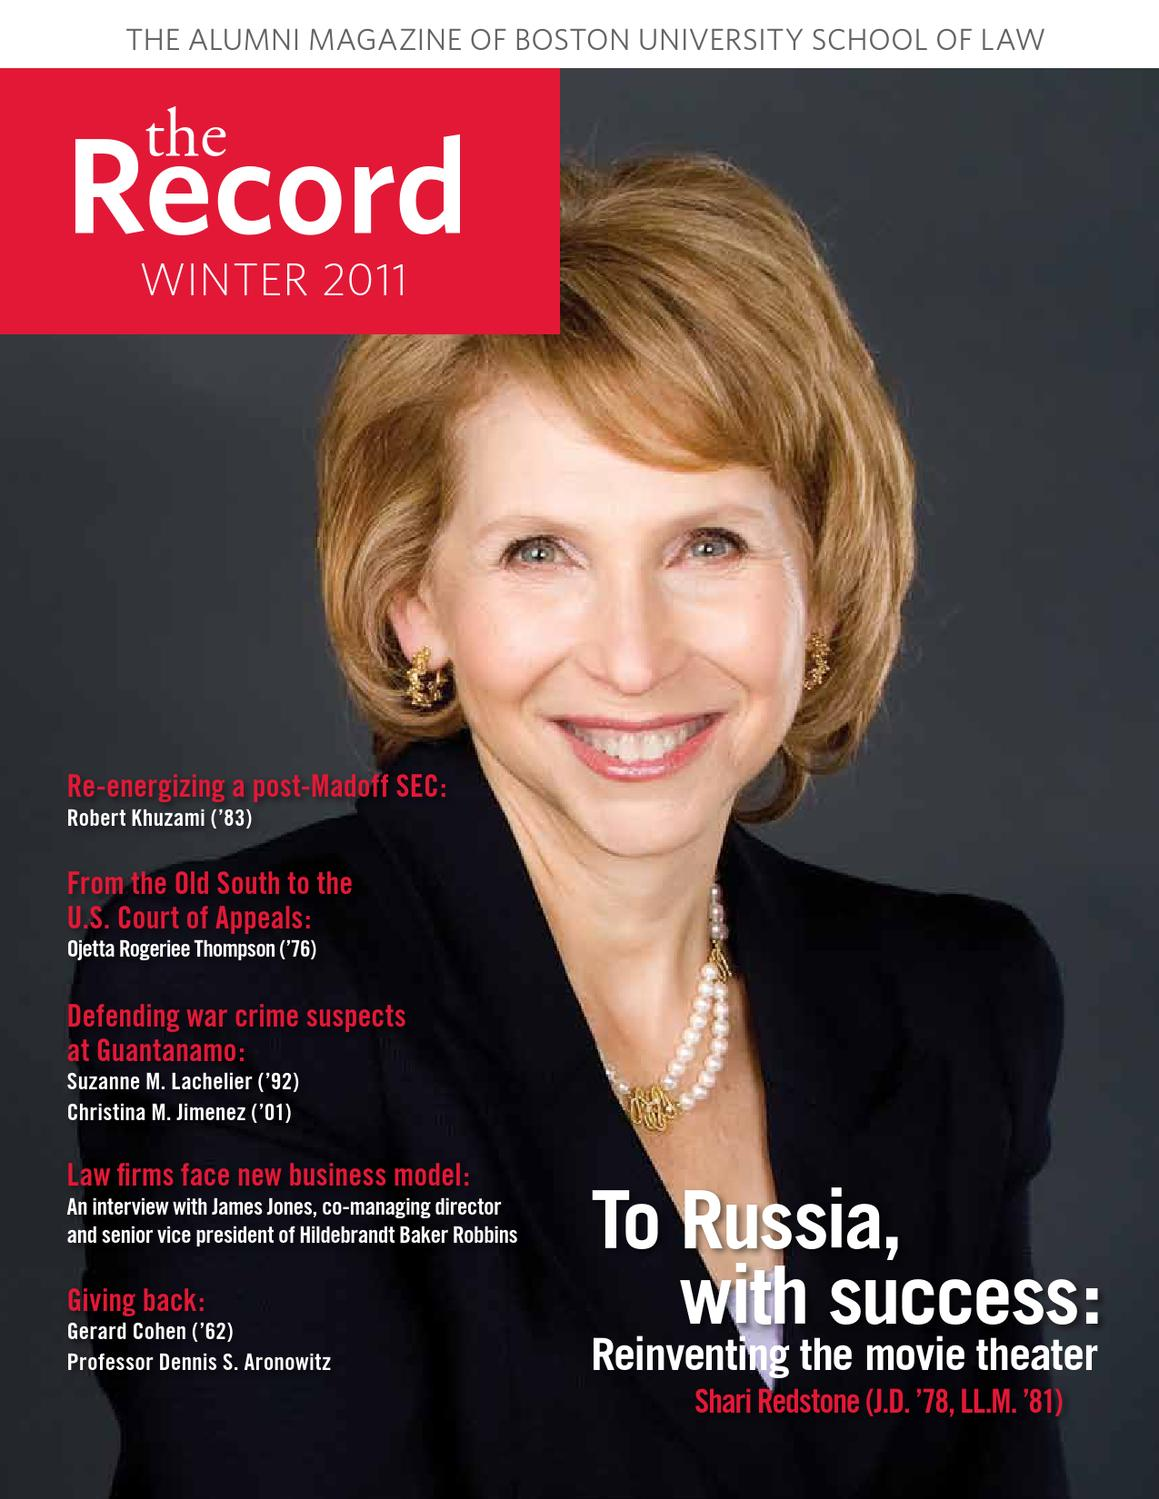 The Record Alumni Magazine Winter 2011 by Boston University